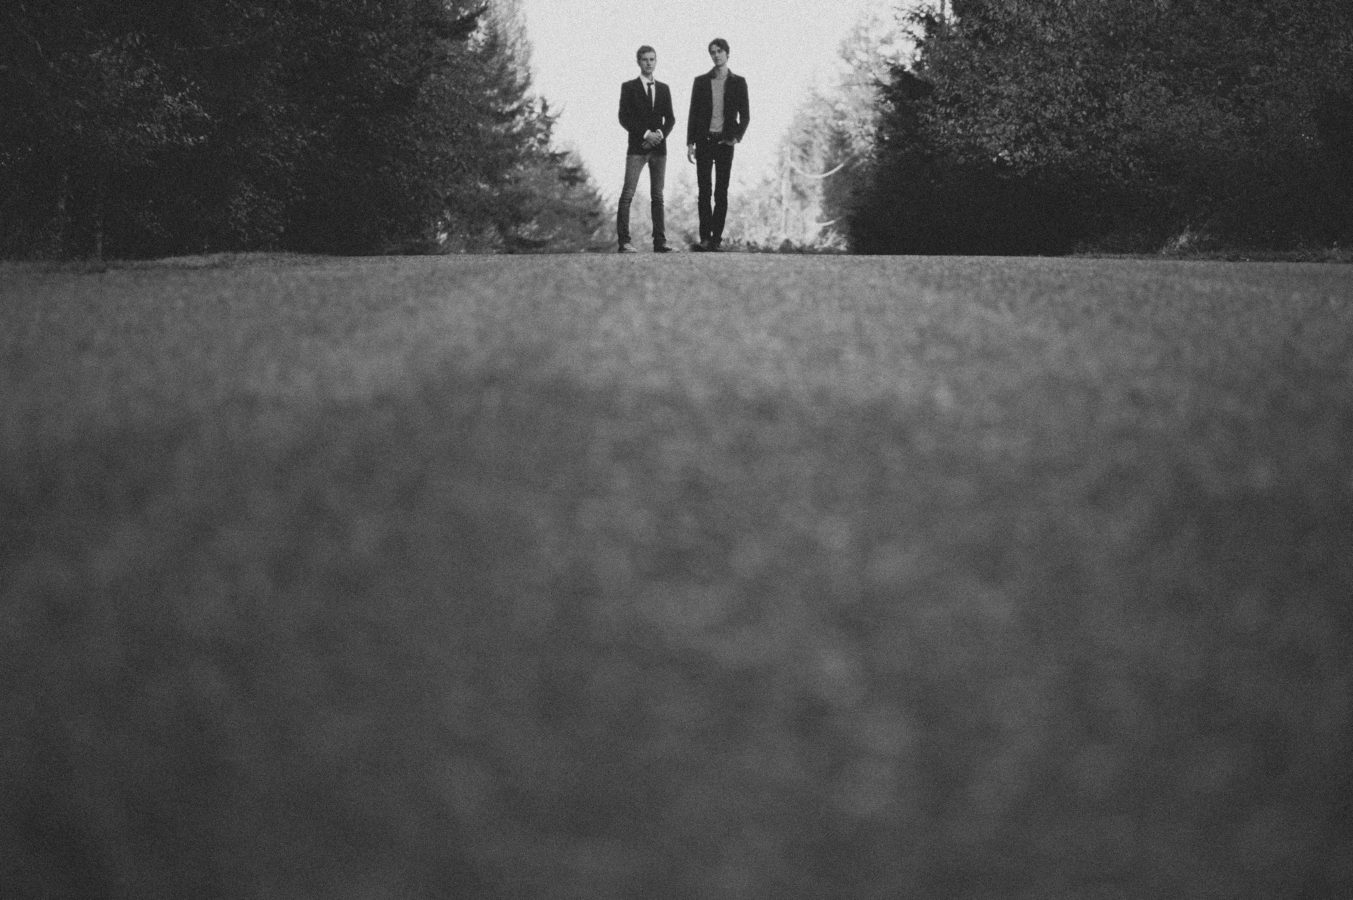 looking up a rural road at two men standing on the crest of a hill with the forest on either side of them